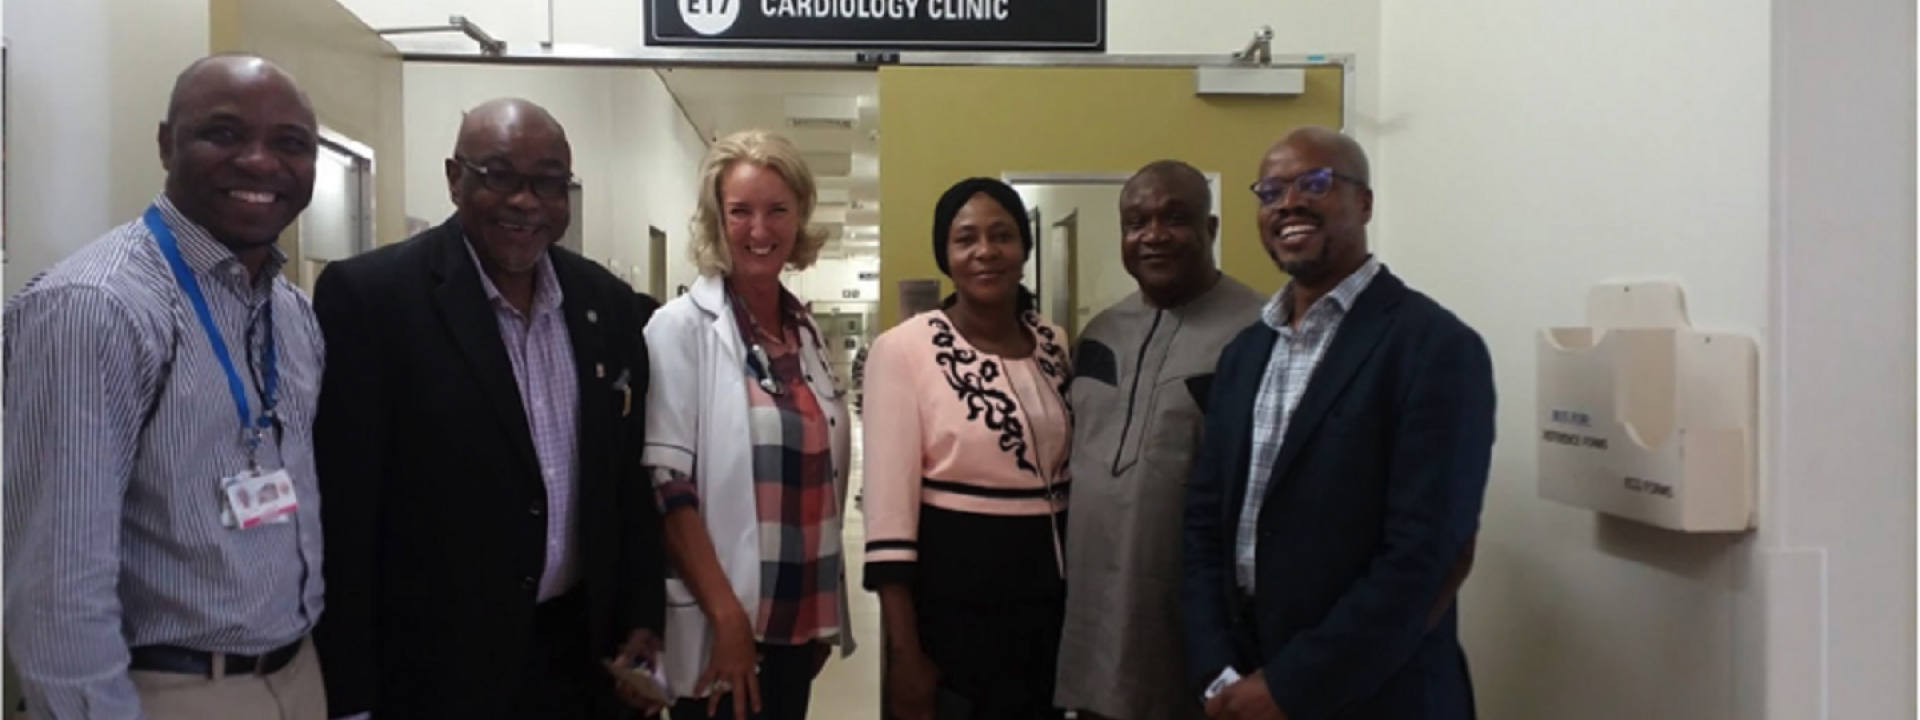 KHRU facilitated the visit of the Vice Chancellor and College Provost of the University of Abuja, Nigeria.